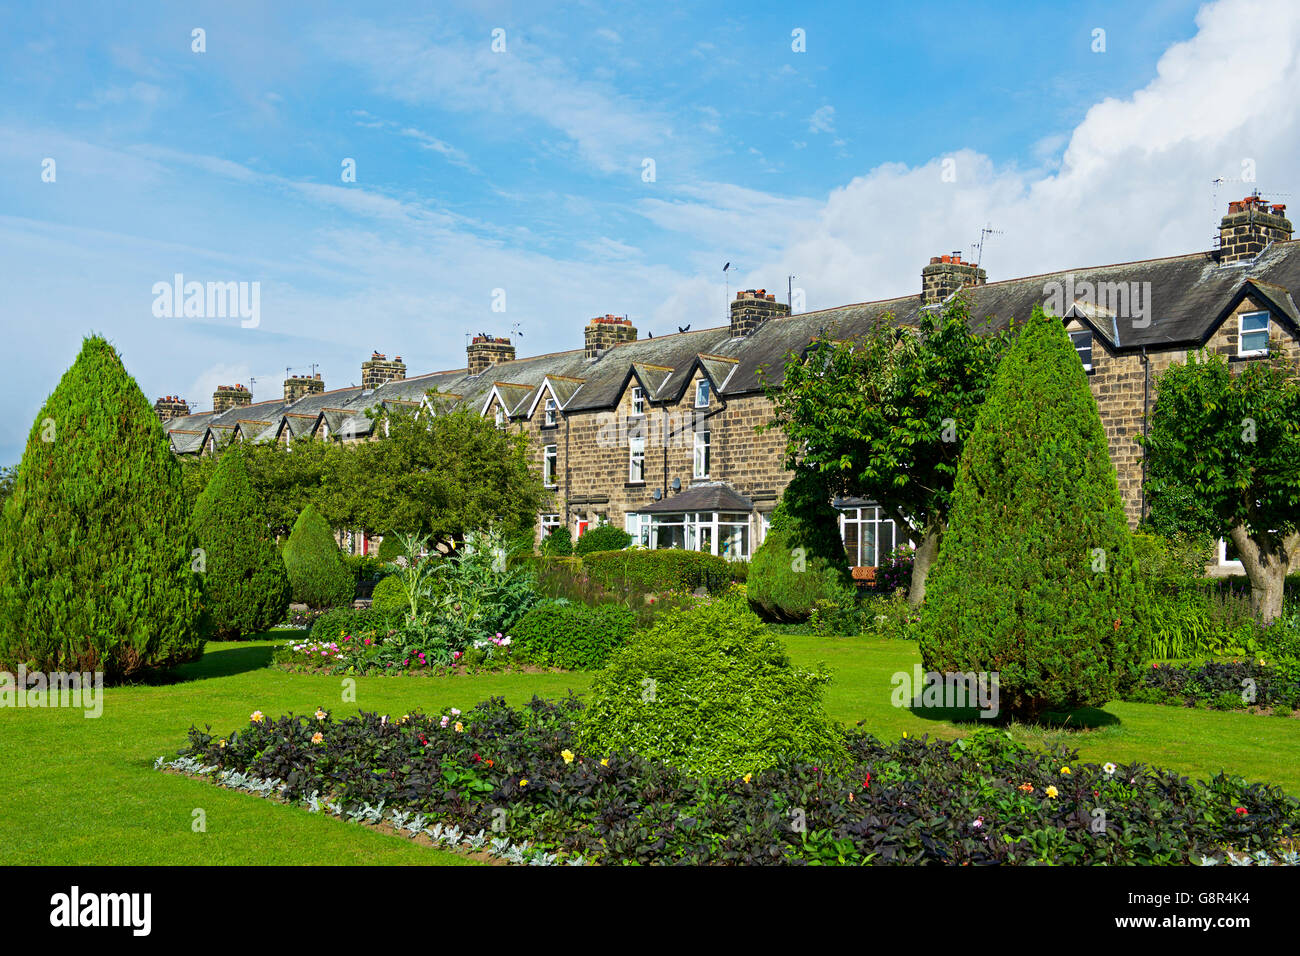 Terraced houses - Wharfe Meadows - Otley, West Yorkshire, England UK - Stock Image